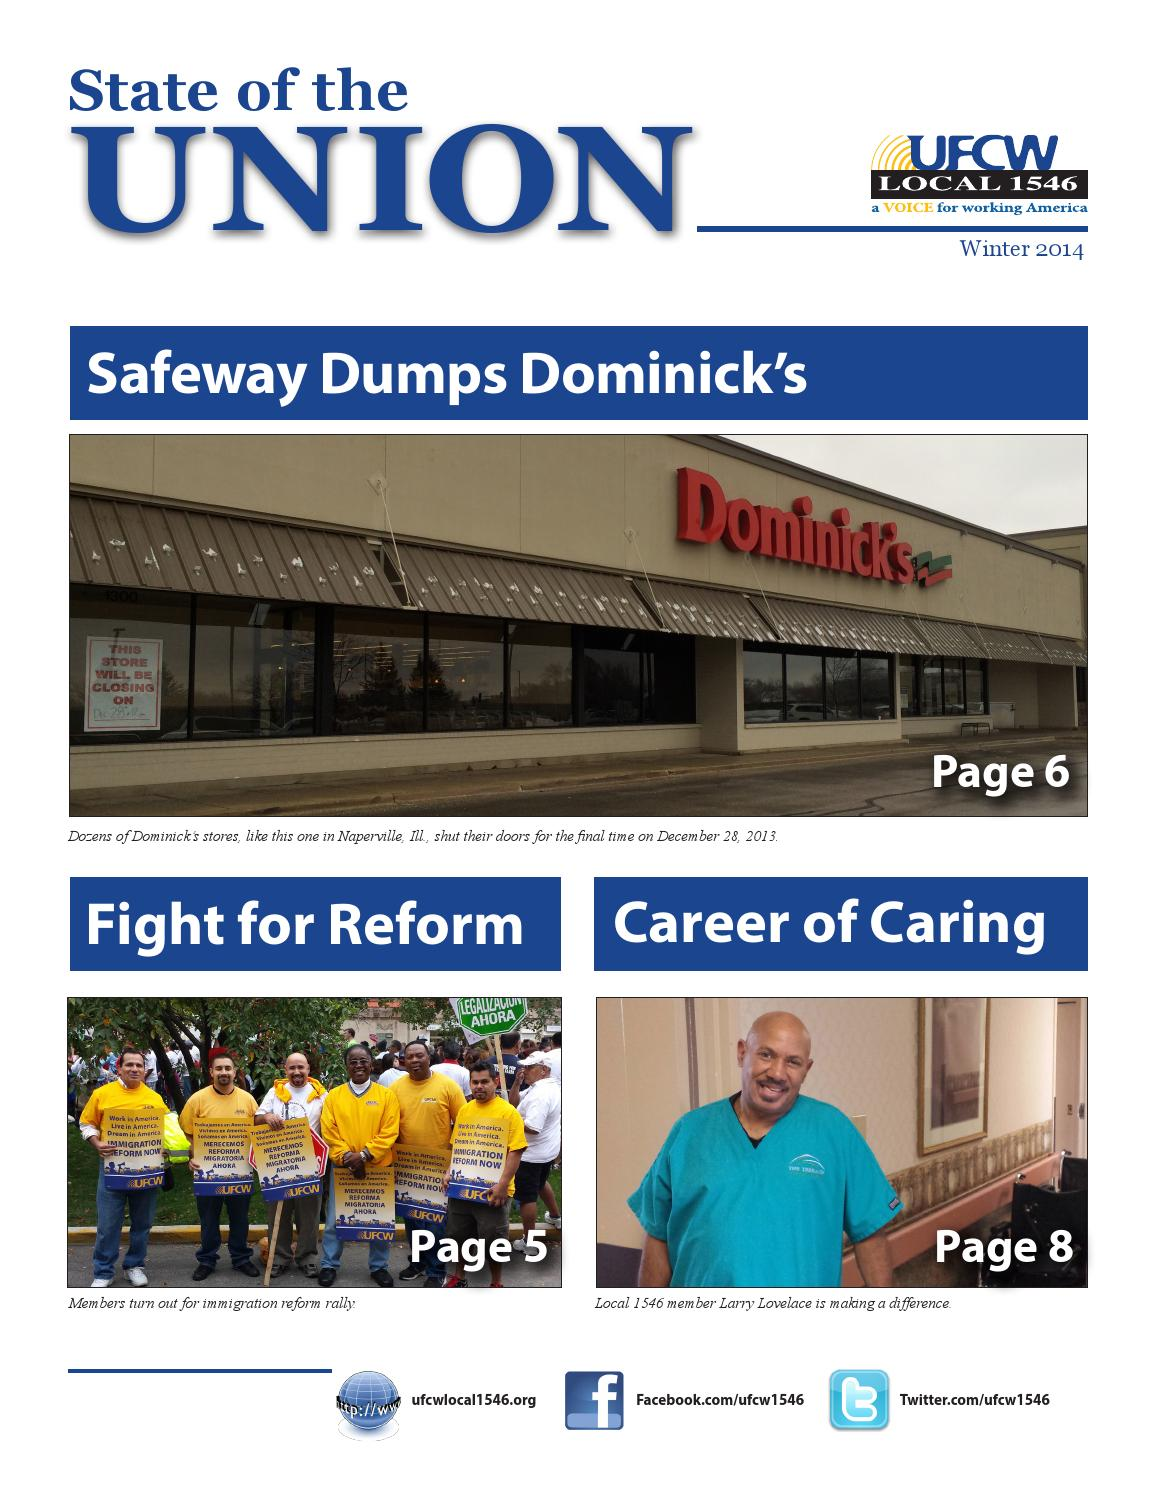 UFCW Local 1546 Newsletter Winter 2014 by Eric Bailey - Issuu